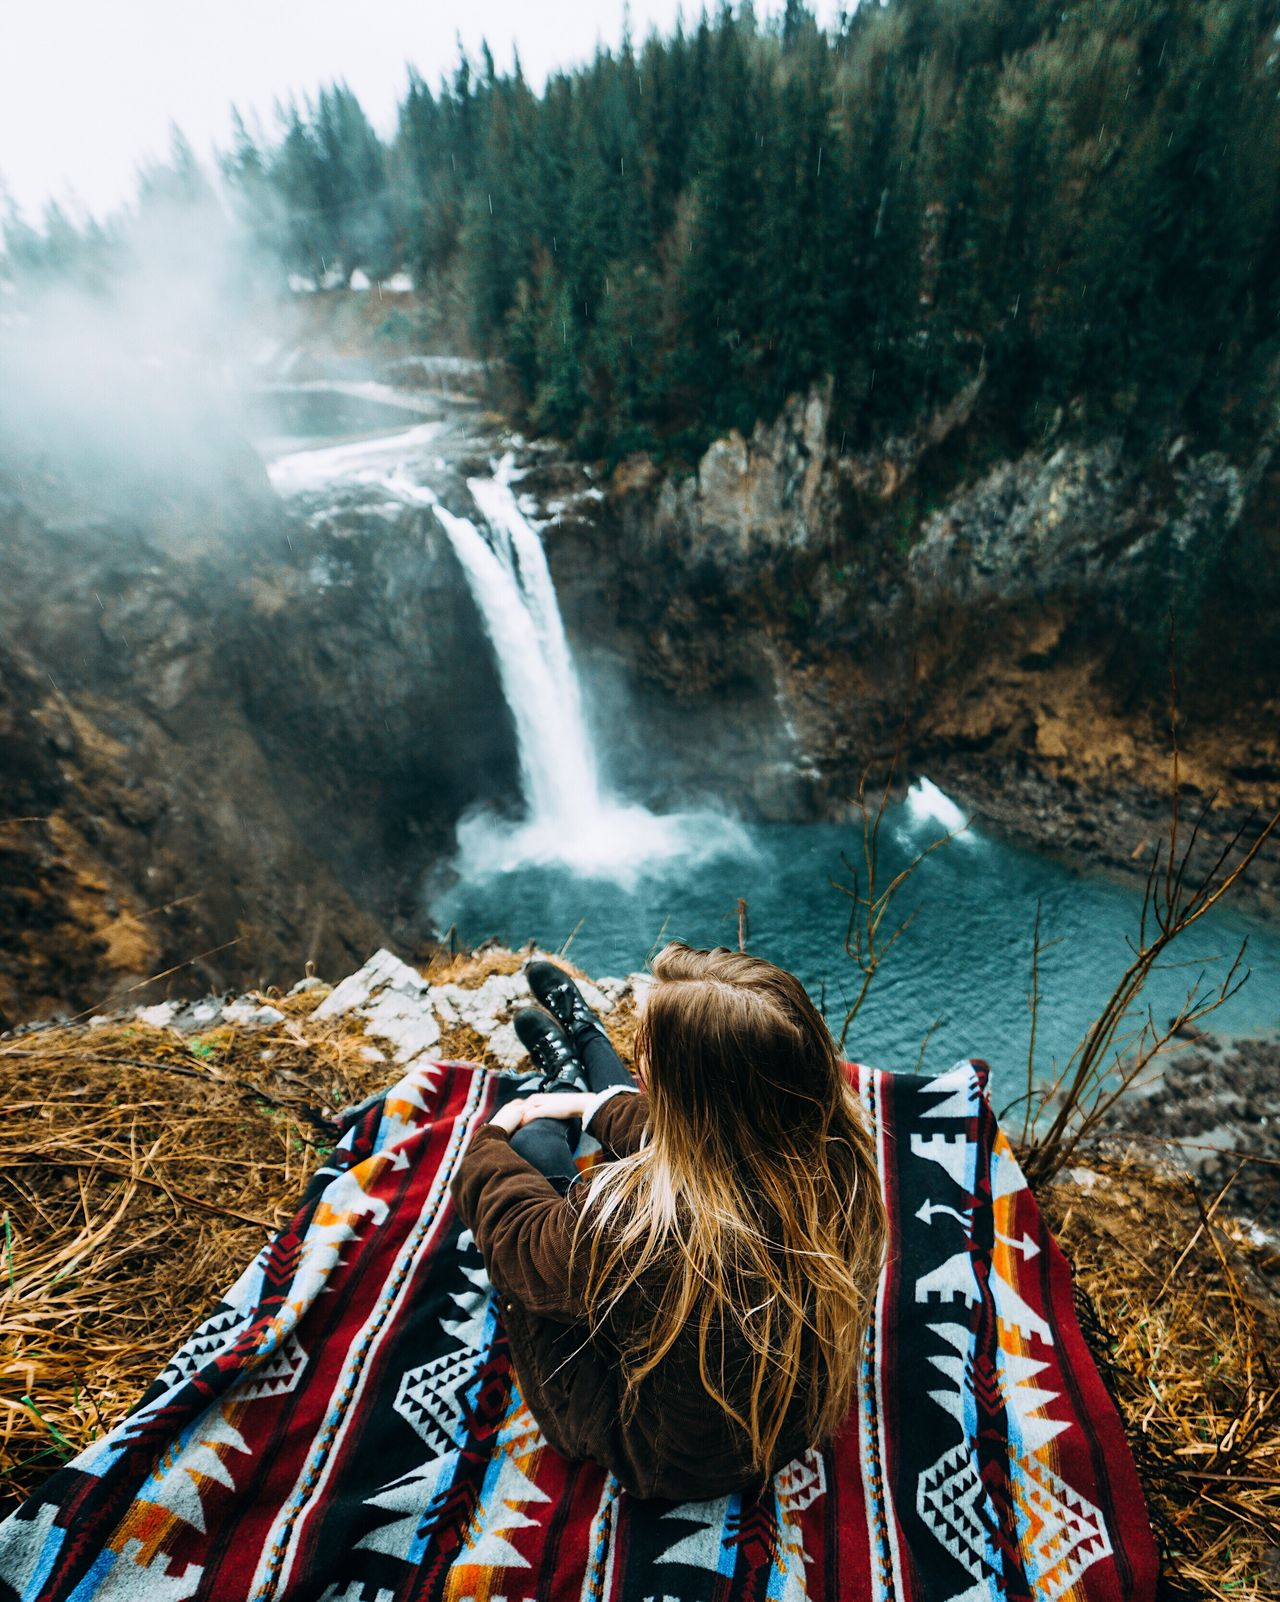 I need an adventure. Rear View Waterfall Adventure Day Outdoors Women Motion Adult People Real People Adults Only Nature Scenics Men Water Only Women One Person Young Adult